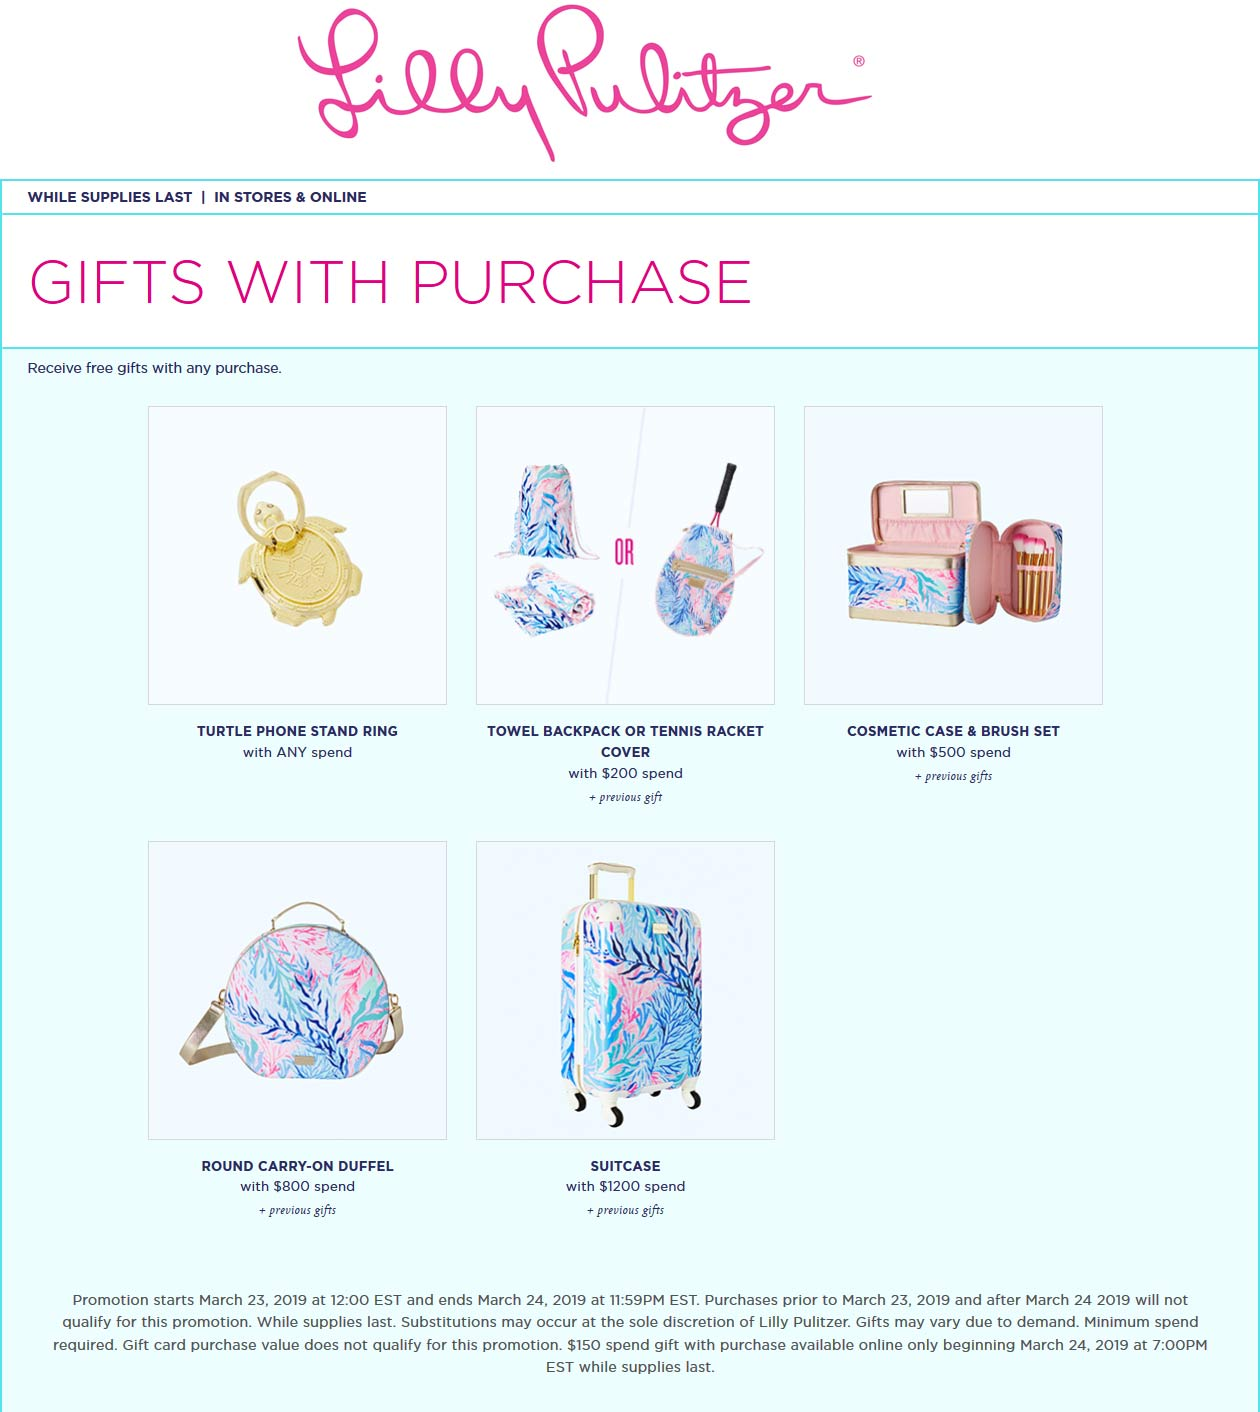 Lilly Pulitzer Coupon October 2019 Free shwag with any order today at Lilly Pulitzer, ditto online